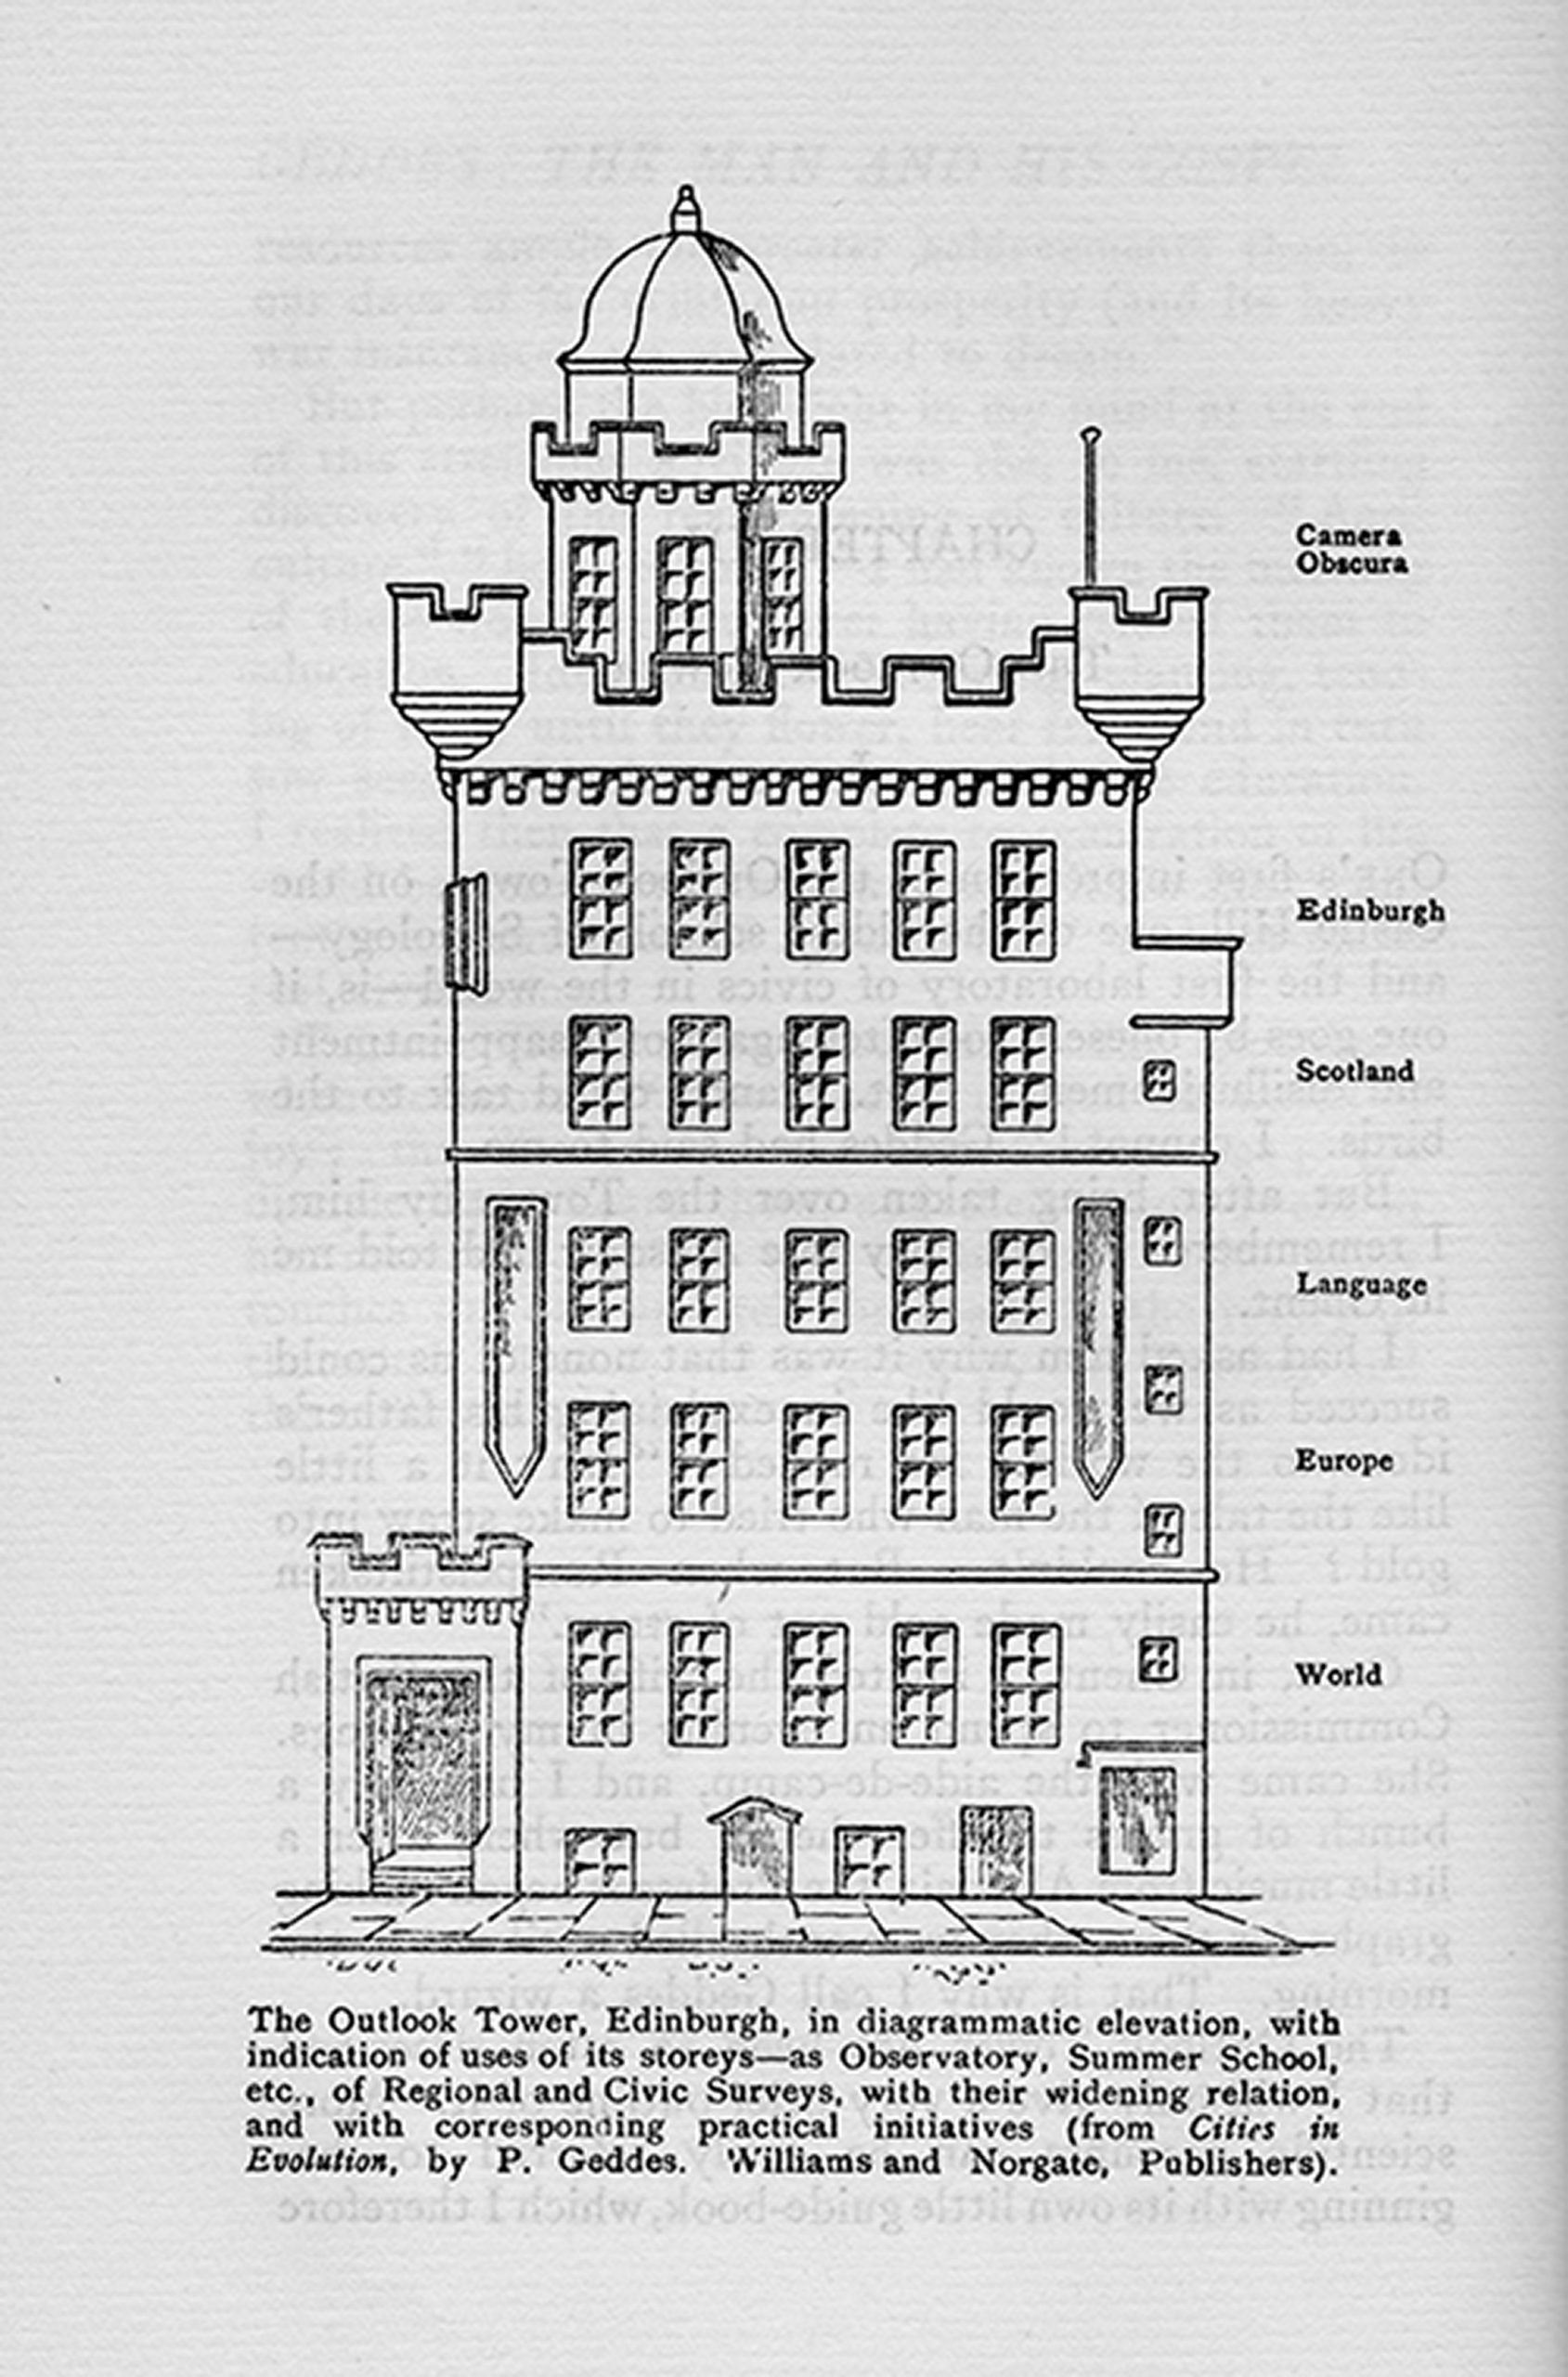 Diagram-of-Patrick-Geddes's-interdisciplinary-Outlook-Tower-3.jpeg